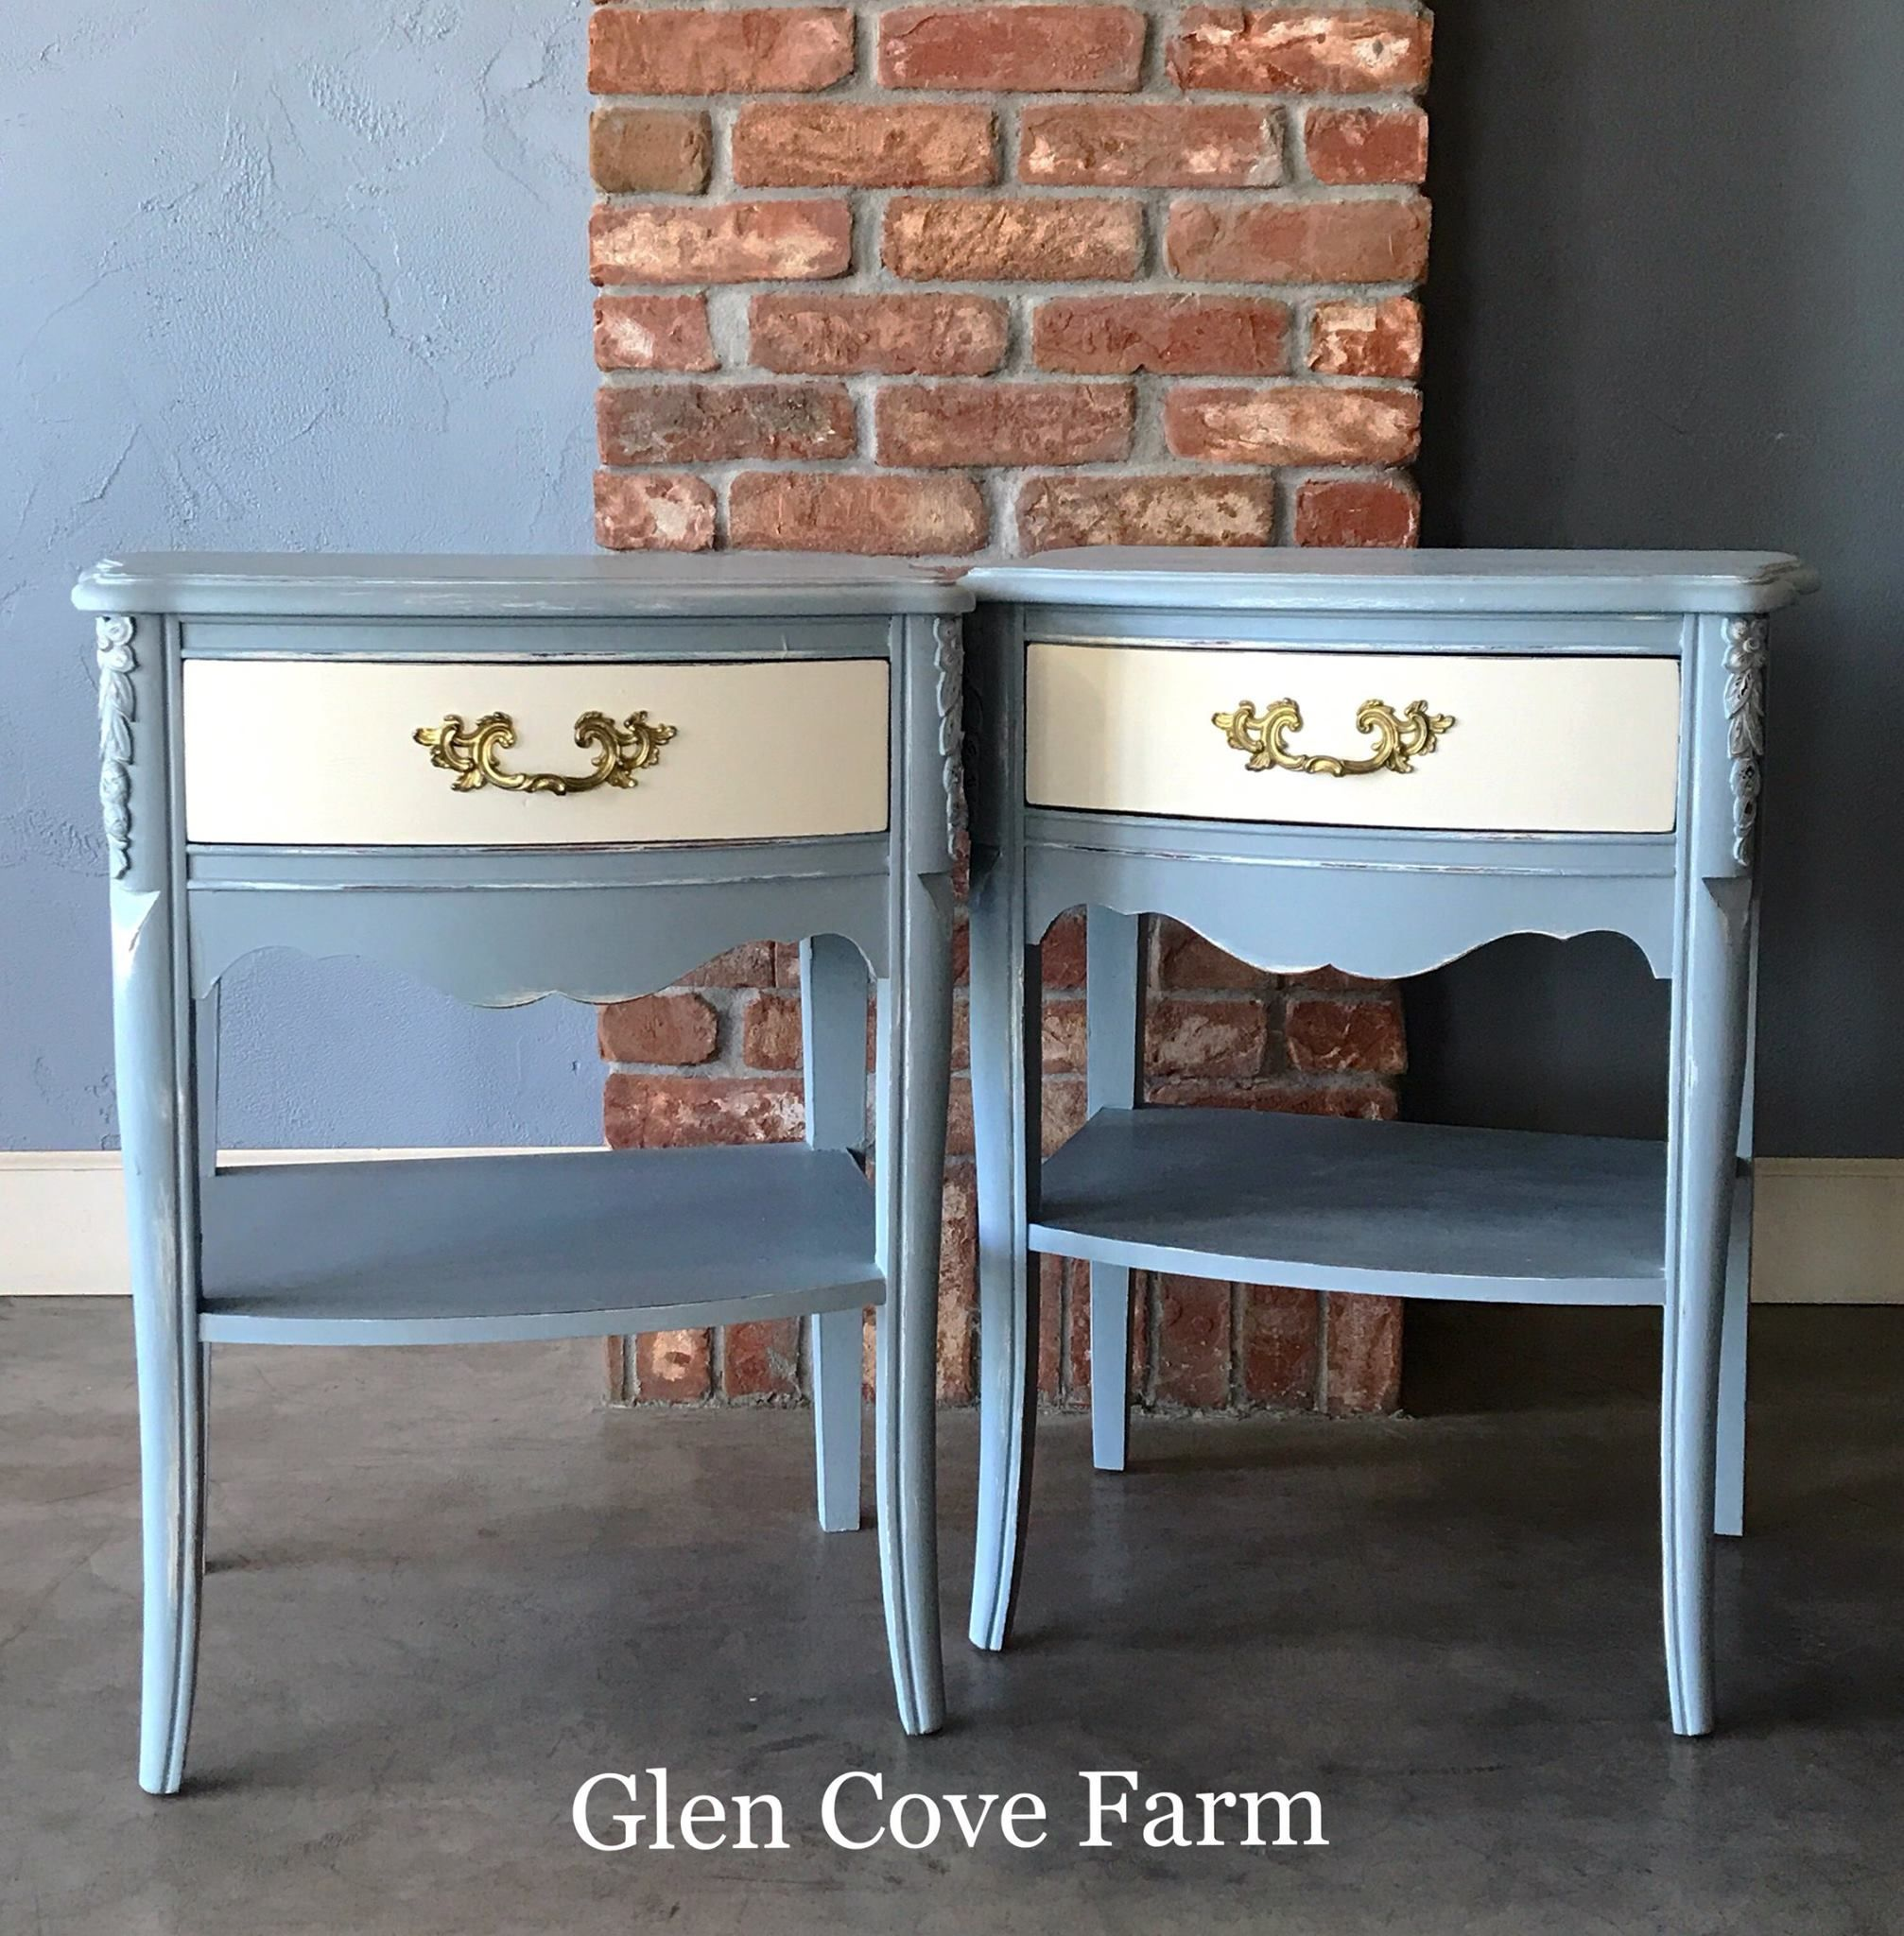 Brilliant Nightstands In MudPaintu0027s Suede Blue And China White By Glen Cove  Farm! #mudpaint